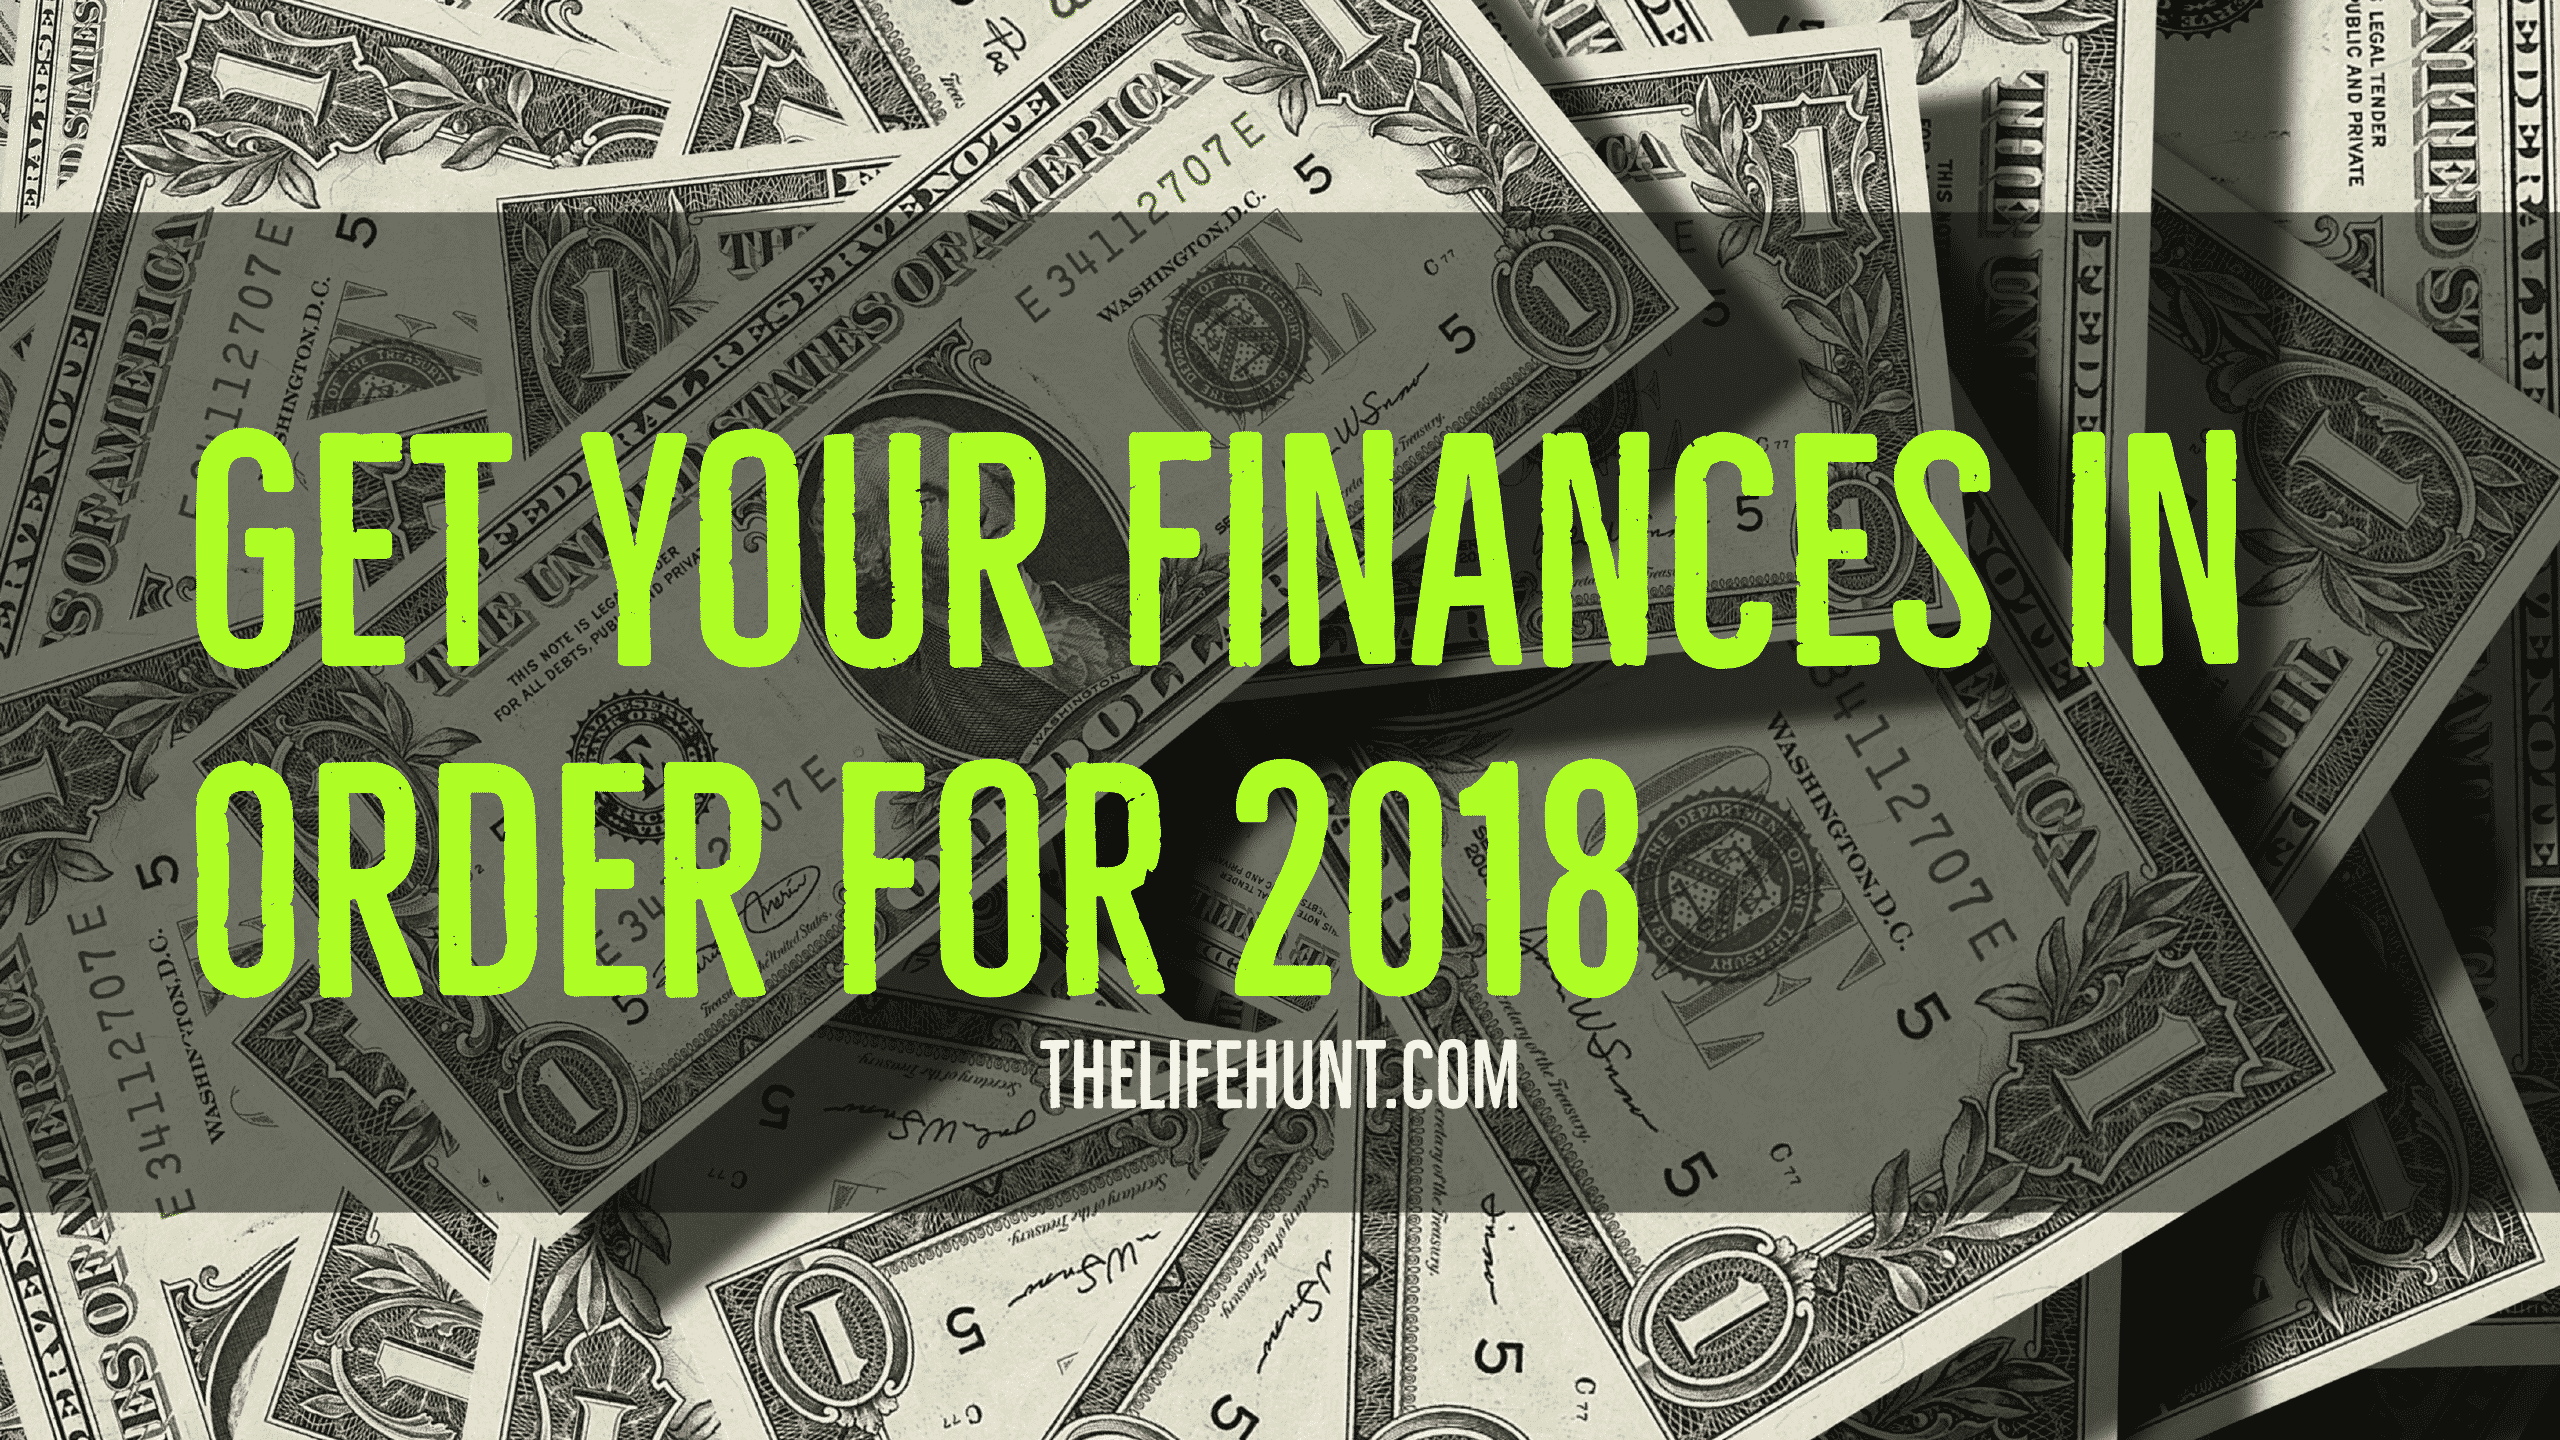 Get your finances in order for 2018